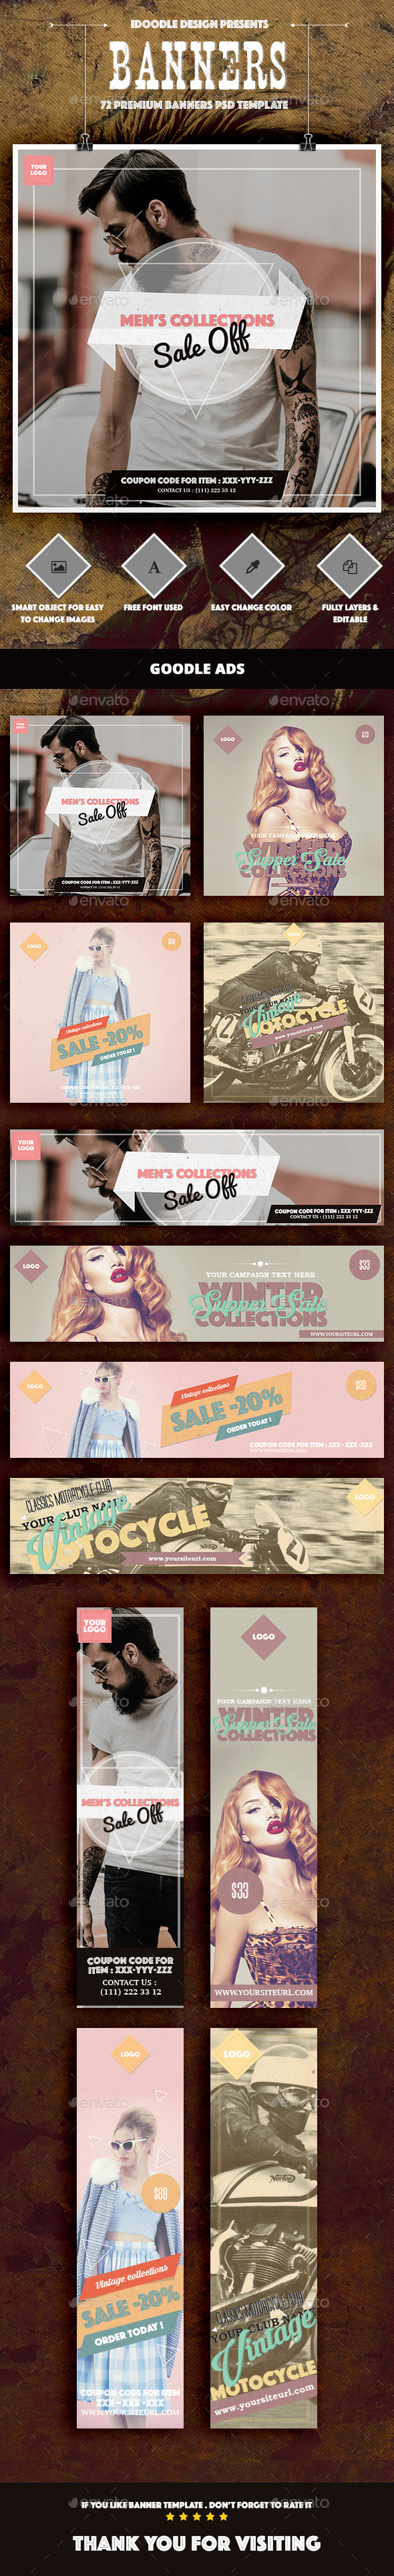 Bundle Multipurpose Retro/Vintage Banner Ads - Banners & Ads Web Elements